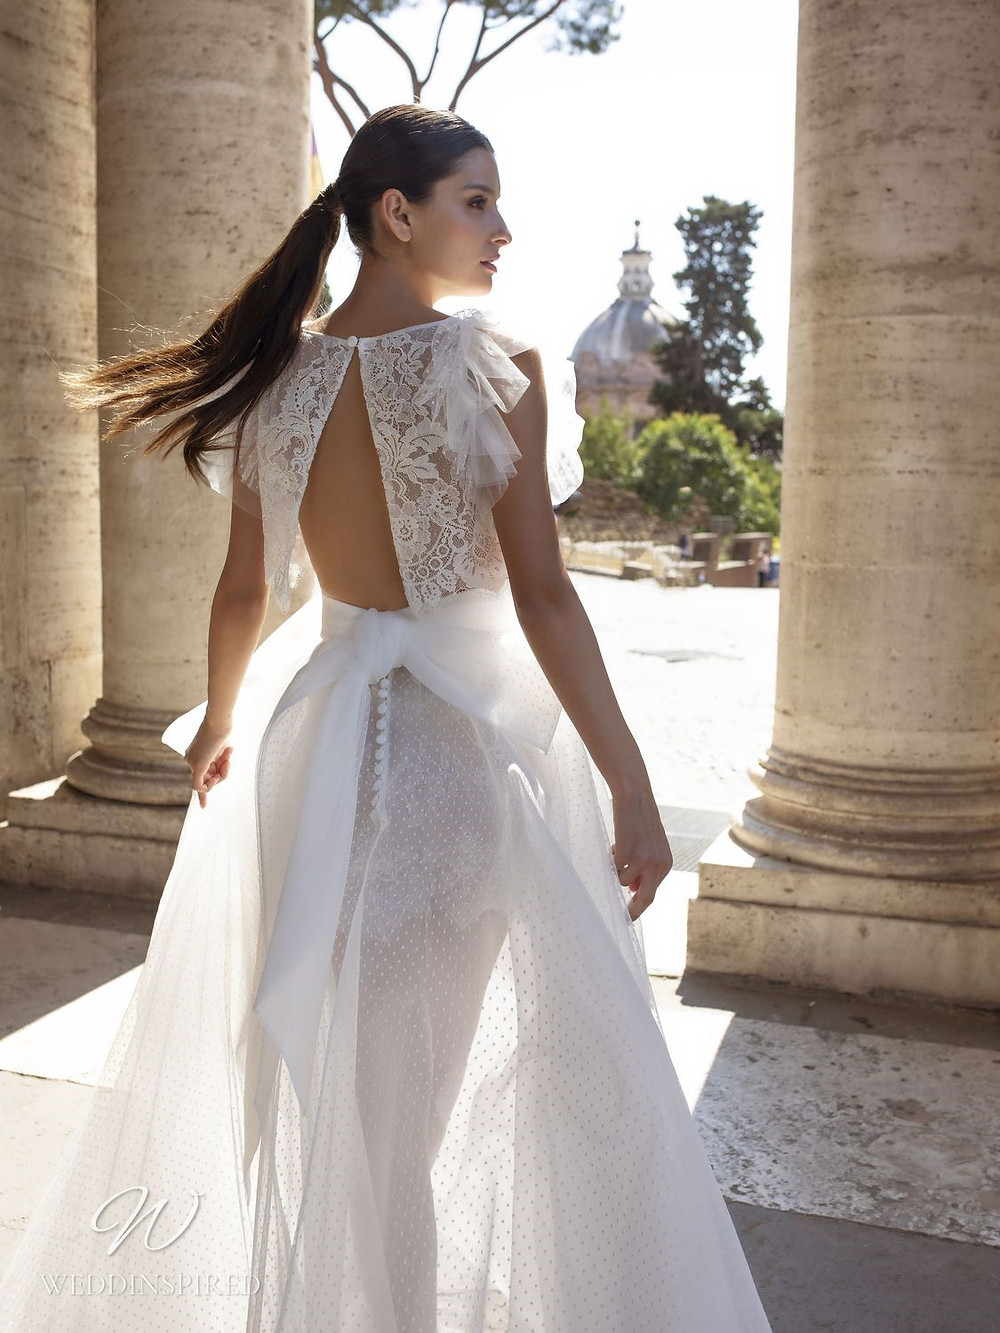 A Pinella Passaro lace and tulle A-line wedding dress with a bow